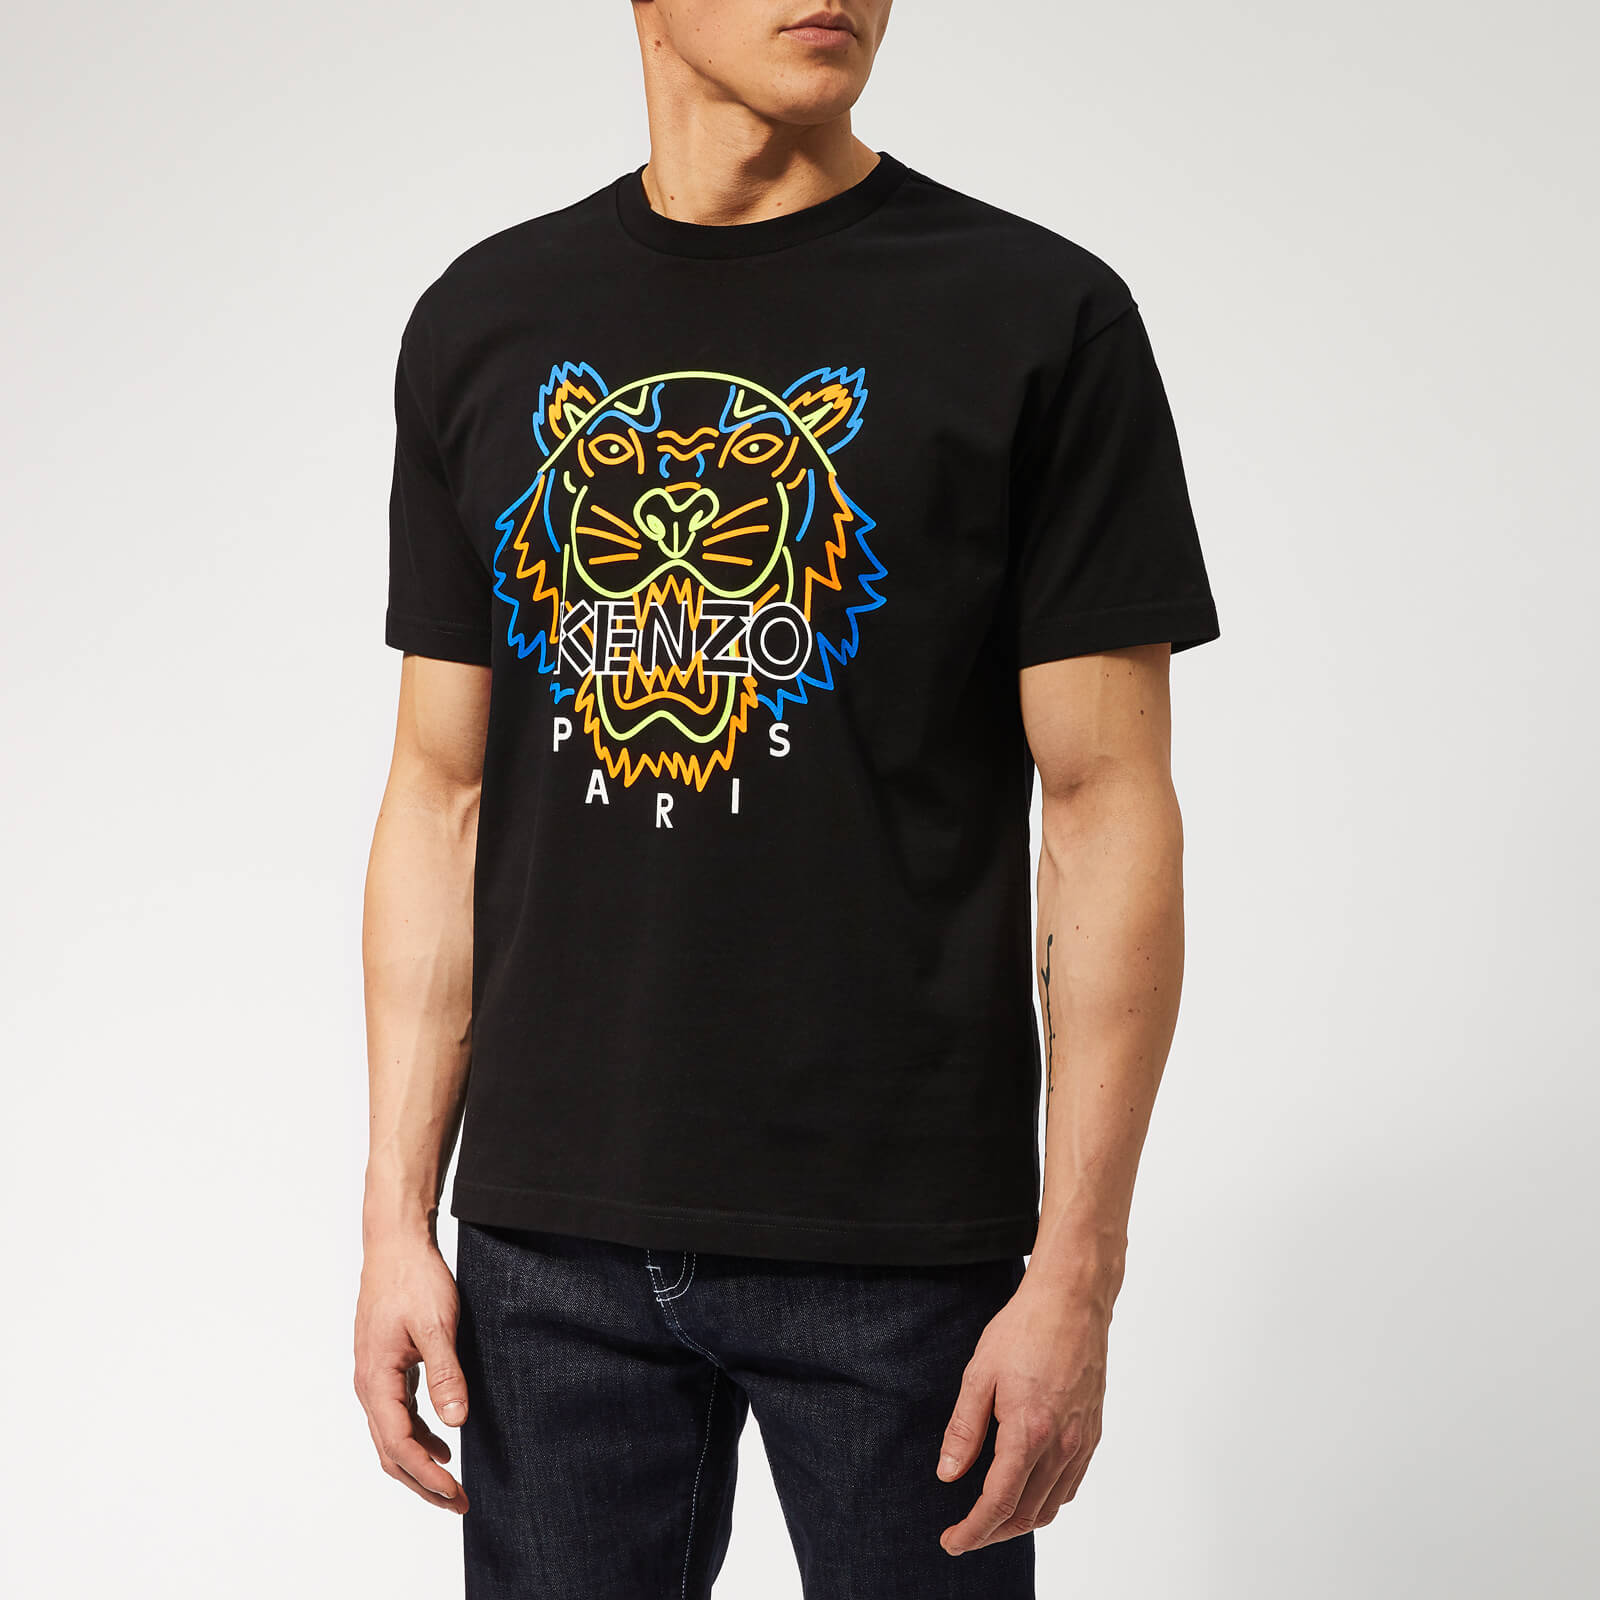 0f4b3ccd KENZO Men's Icon Neon T-Shirt - Black - Free UK Delivery over £50